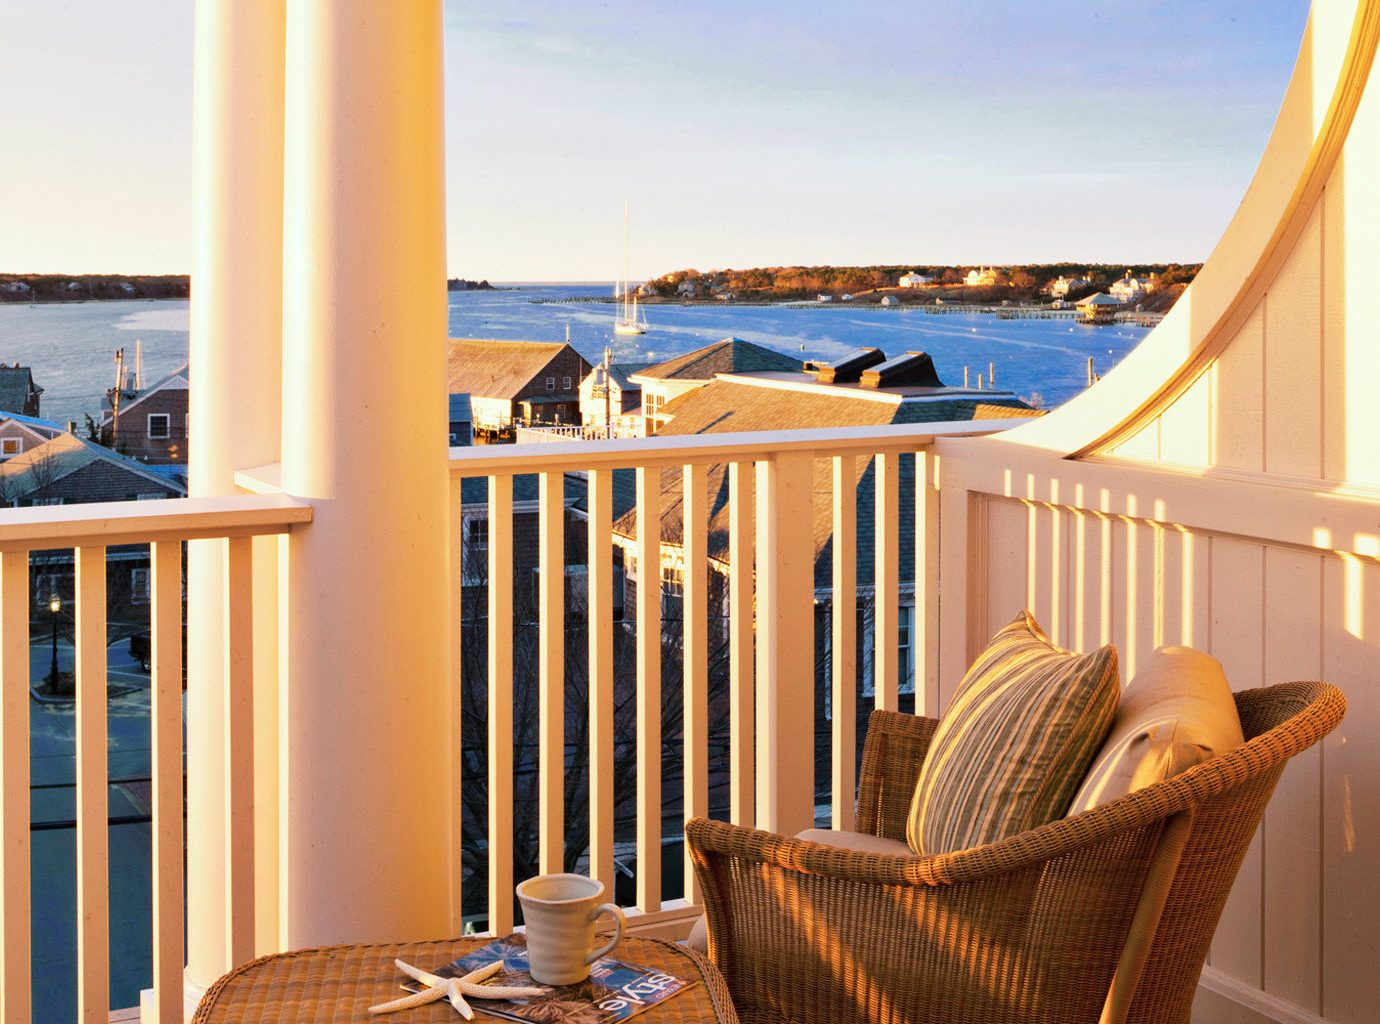 B&B Balcony Boutique Scenic views Trip Ideas Waterfront sky chair outdoor property room vacation home Resort estate Ocean house Villa overlooking cottage condominium interior design real estate apartment Suite living room Deck furniture